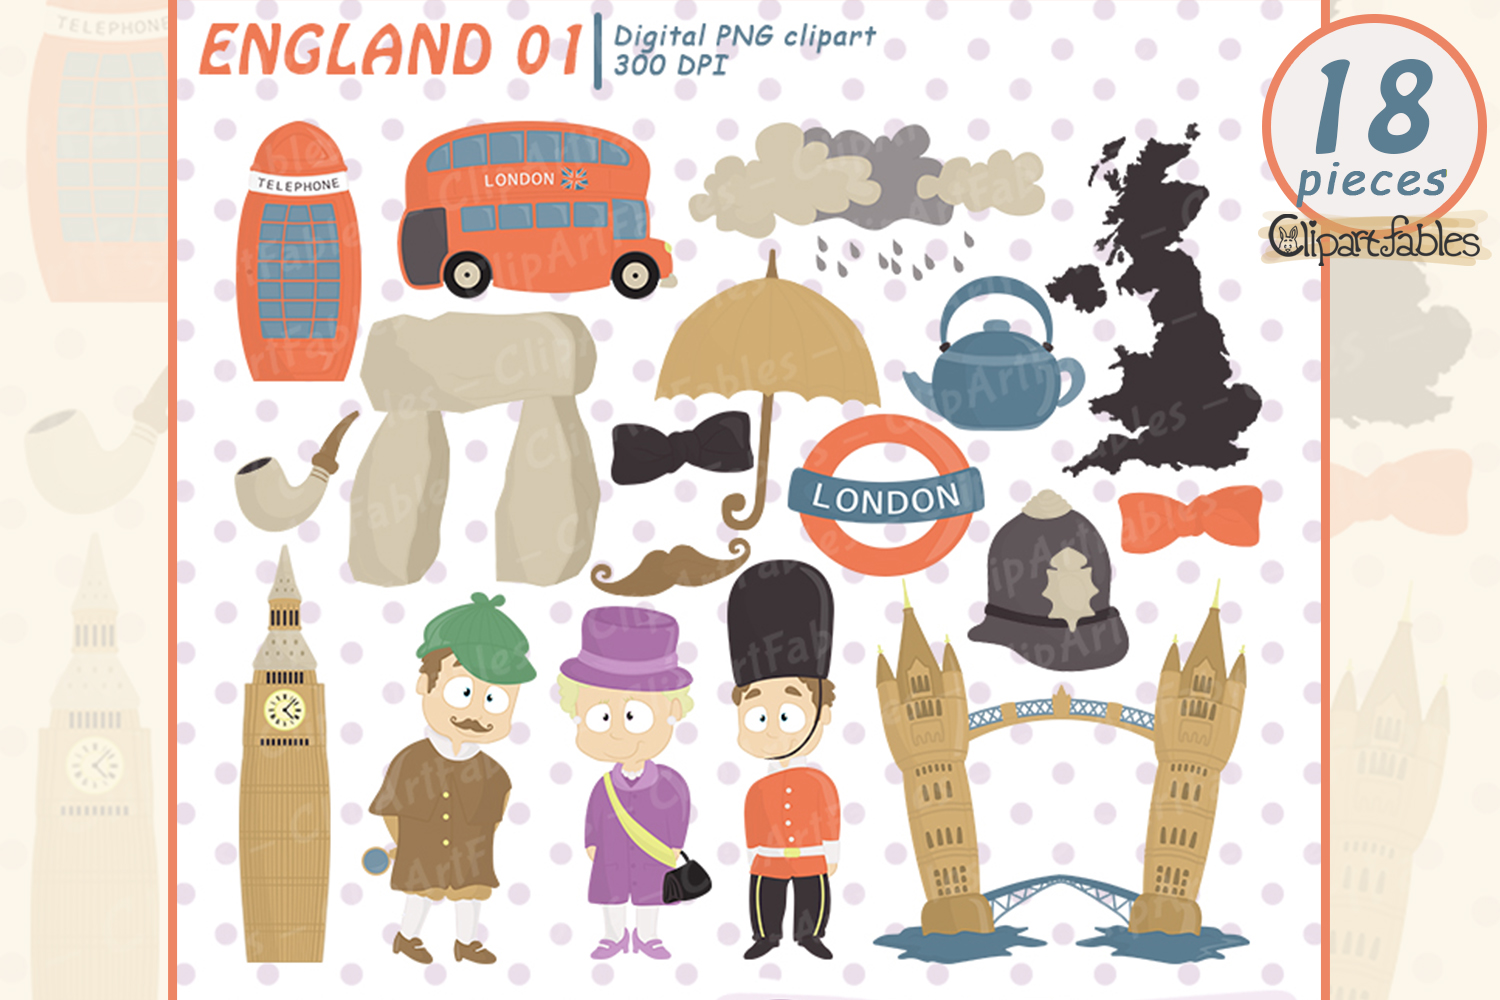 Cute London clipart, England clip art.